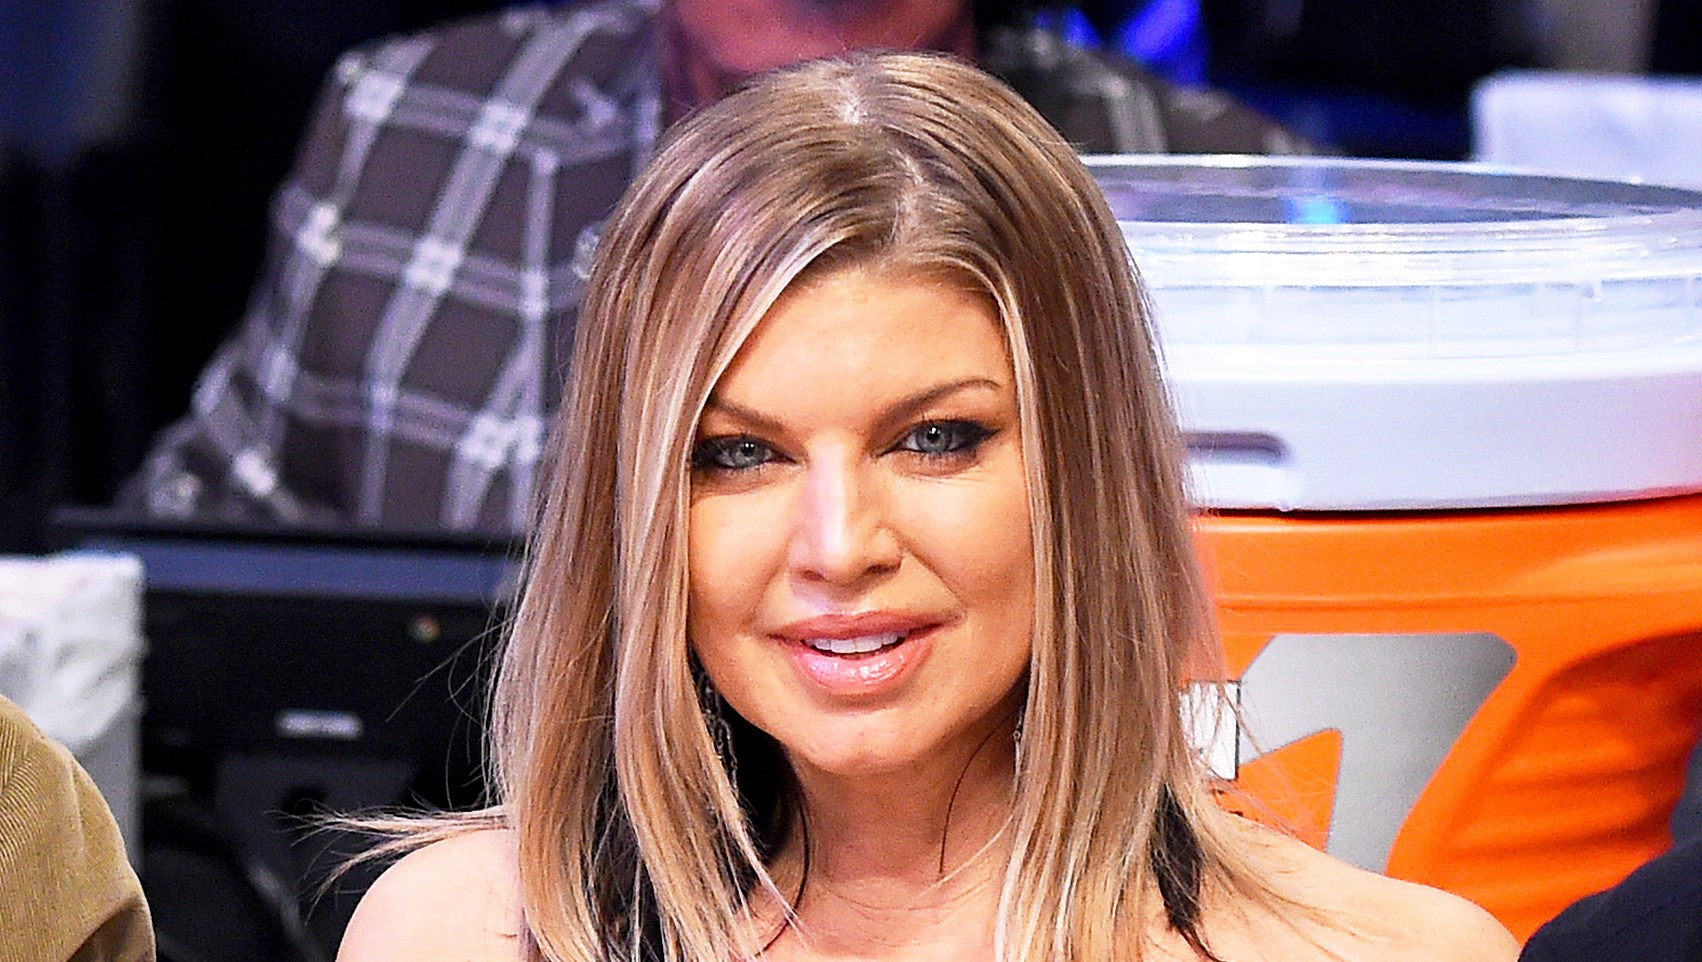 Fergie attends the NBA All-Star Game as a part of 2018 NBA All-Star Weekend at STAPLES Center on February 18, 2018 in Los Angeles, California.